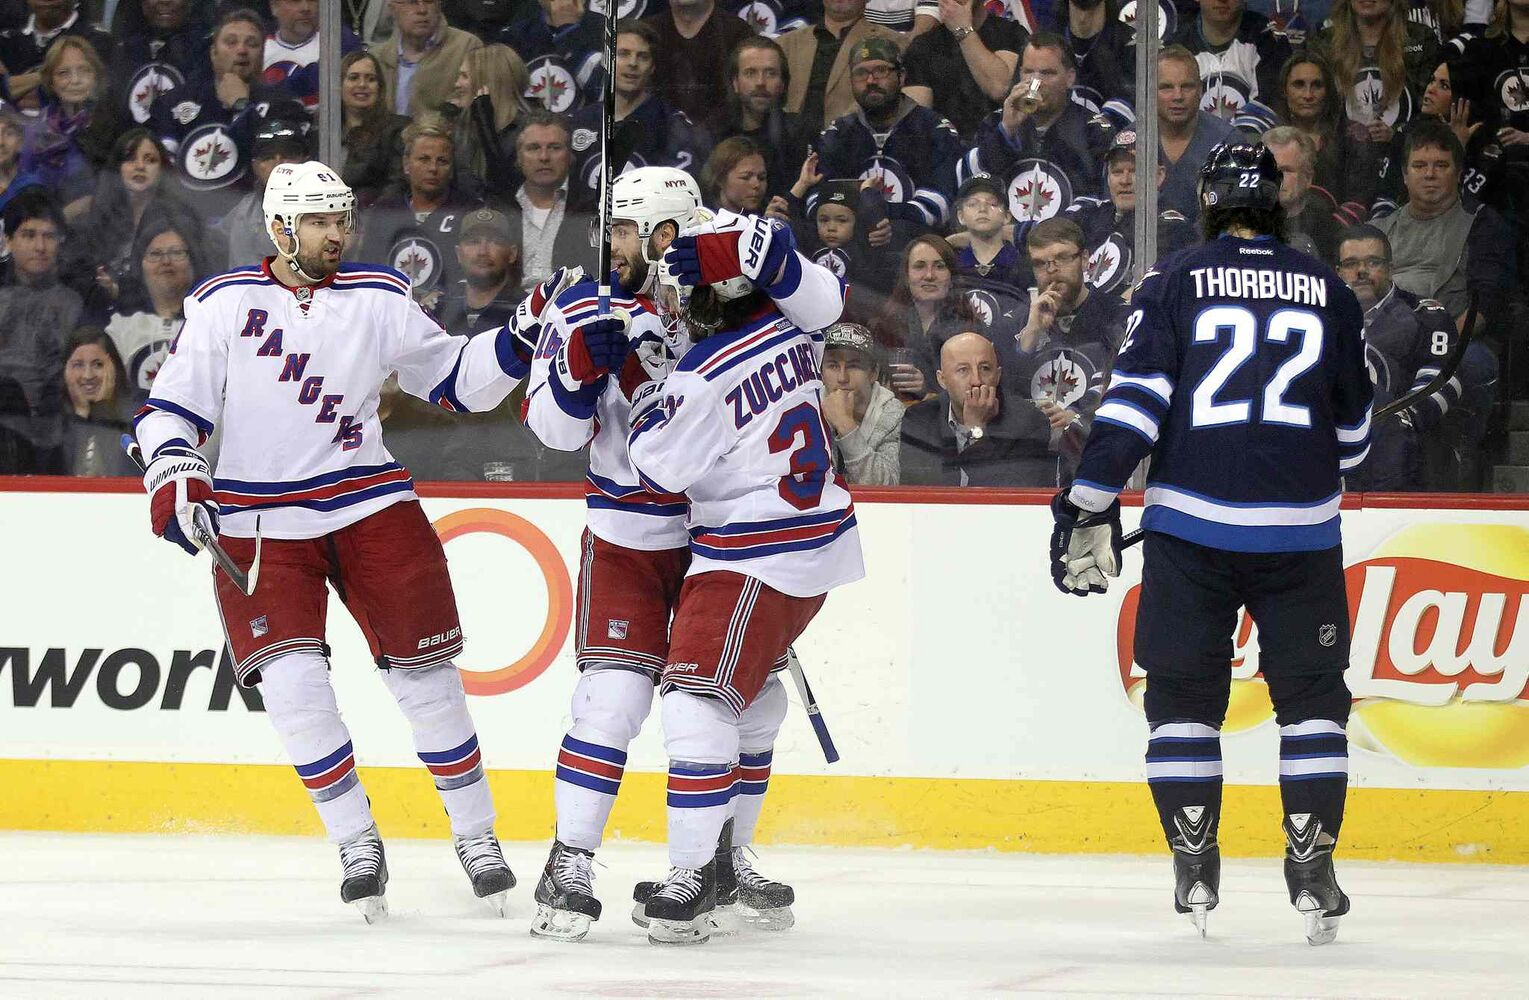 New York Rangers Rick Nash (from left) Derick Brassard and goal scorer Mats Zuccarello celebrate their answering goal against the Winnipeg Jets in the first period of Tuesday's game as Chris Thorburn skates away.   (Phil Hossack / Winnipeg Free Press)